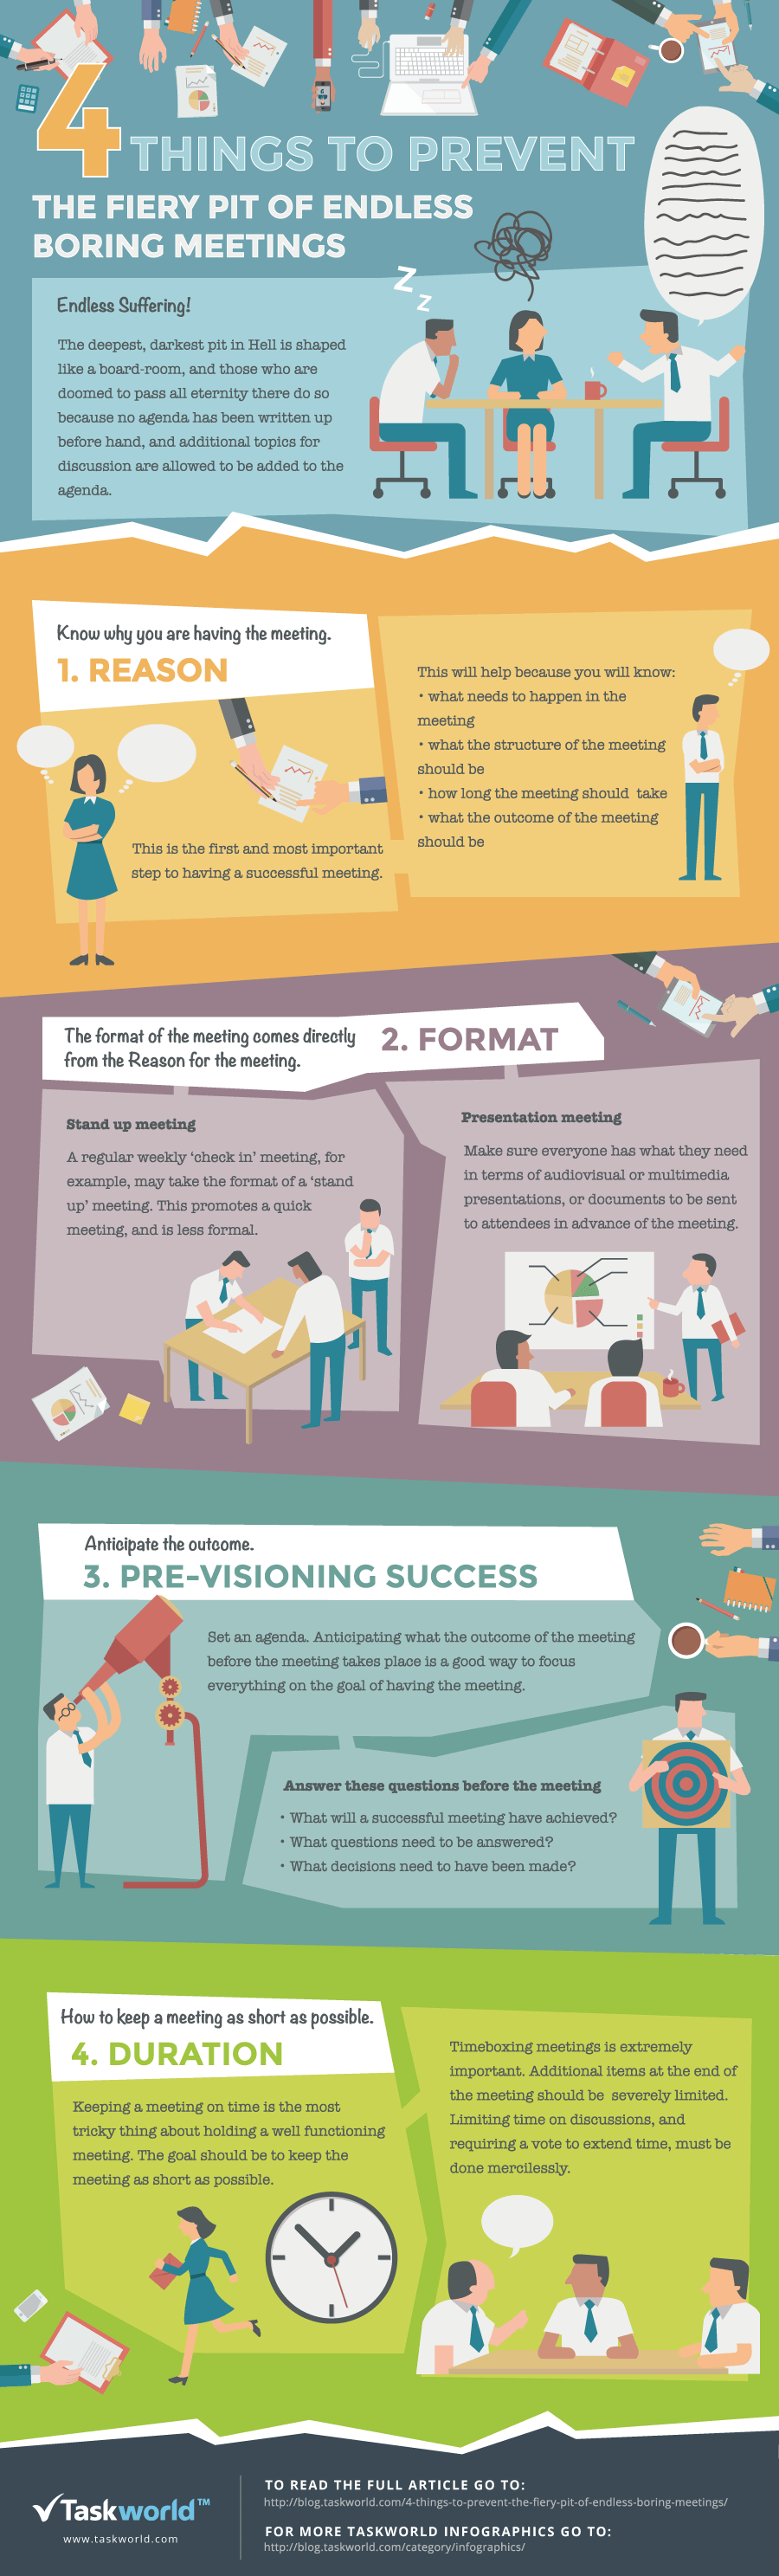 4 Things To Prevent The Fiery Pit of Endless Boring Meetings